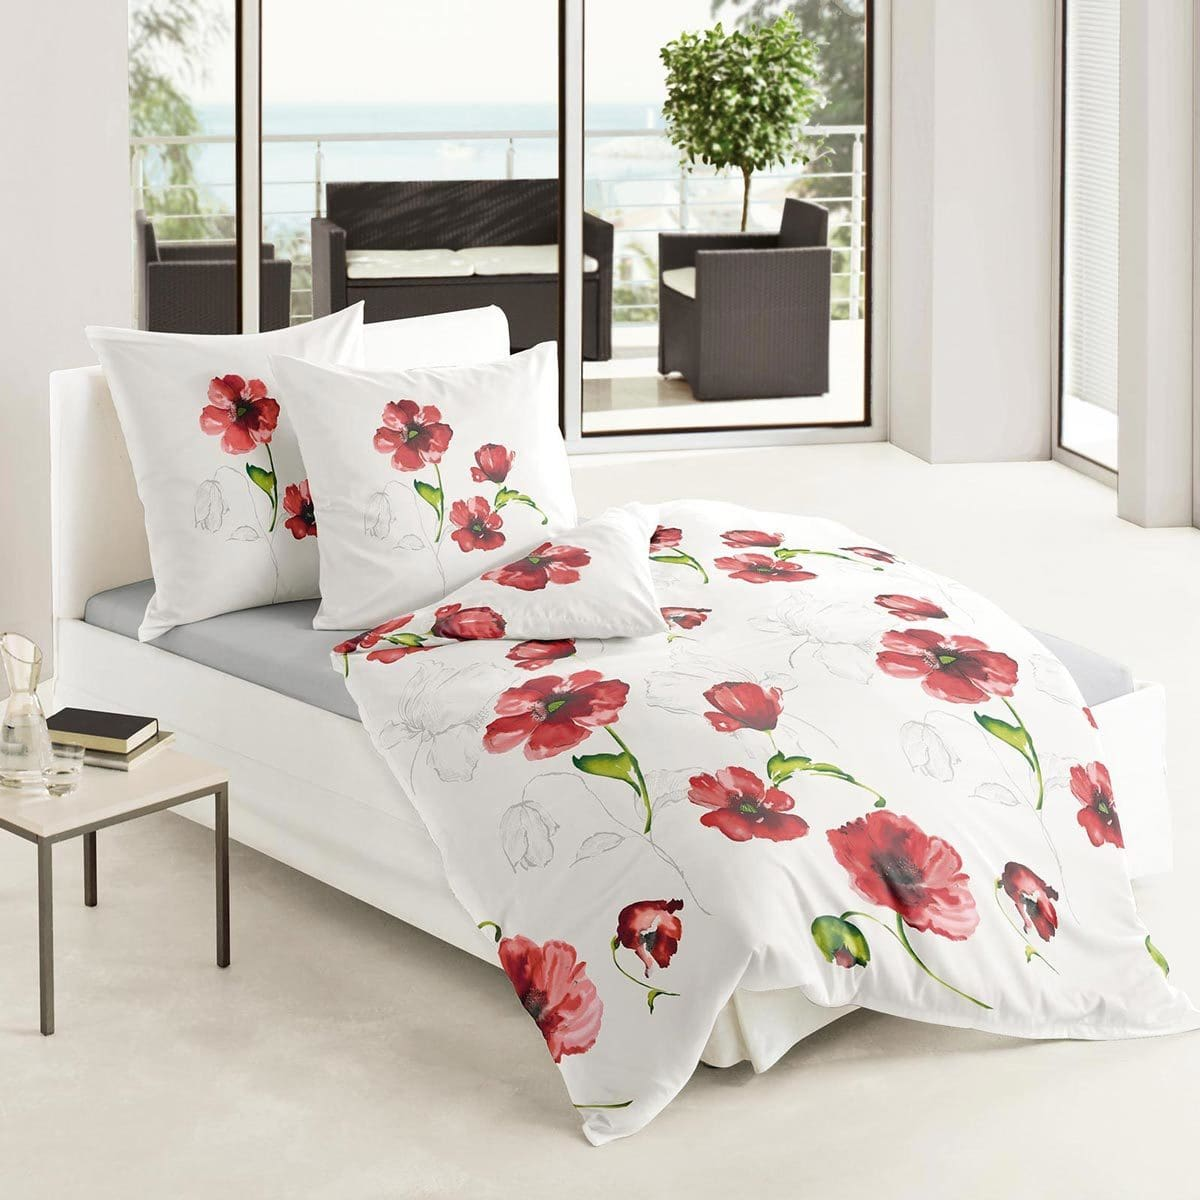 traumschlaf mako satin bettw sche mohnblumen g nstig. Black Bedroom Furniture Sets. Home Design Ideas